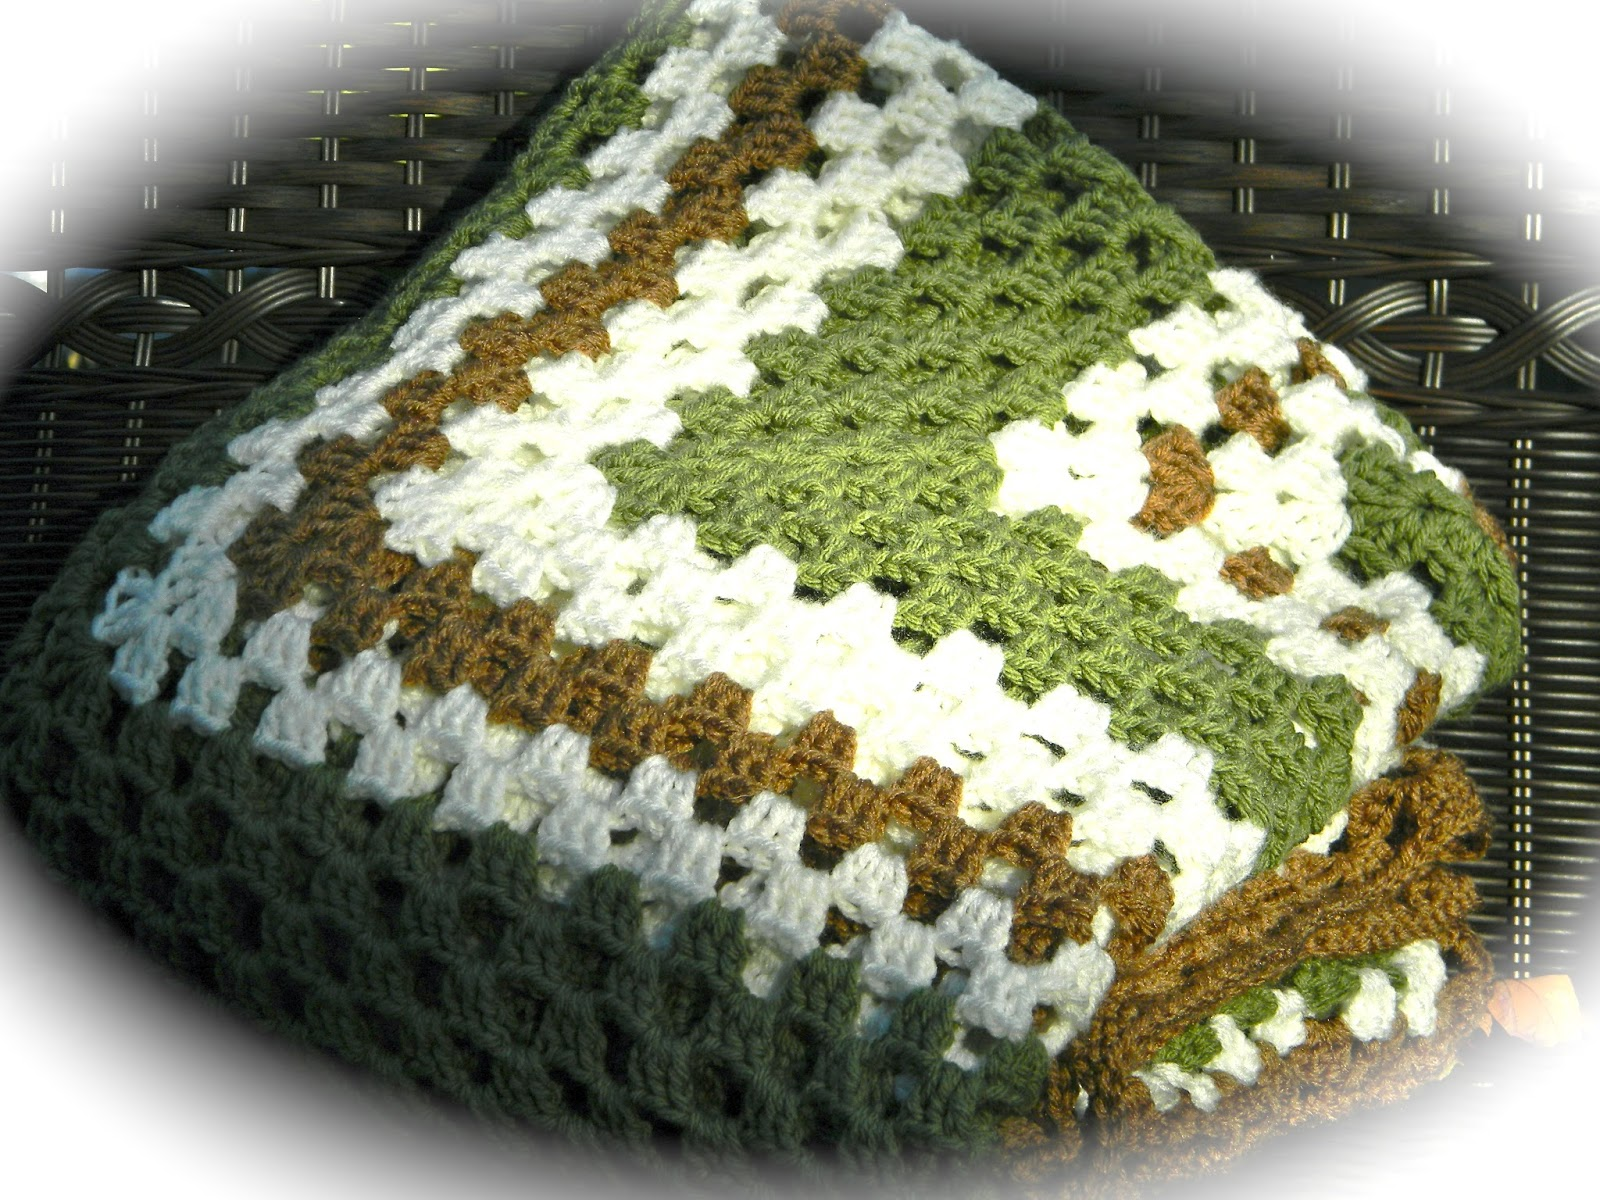 Home Cooked Handmade Giant Granny Square Blanket